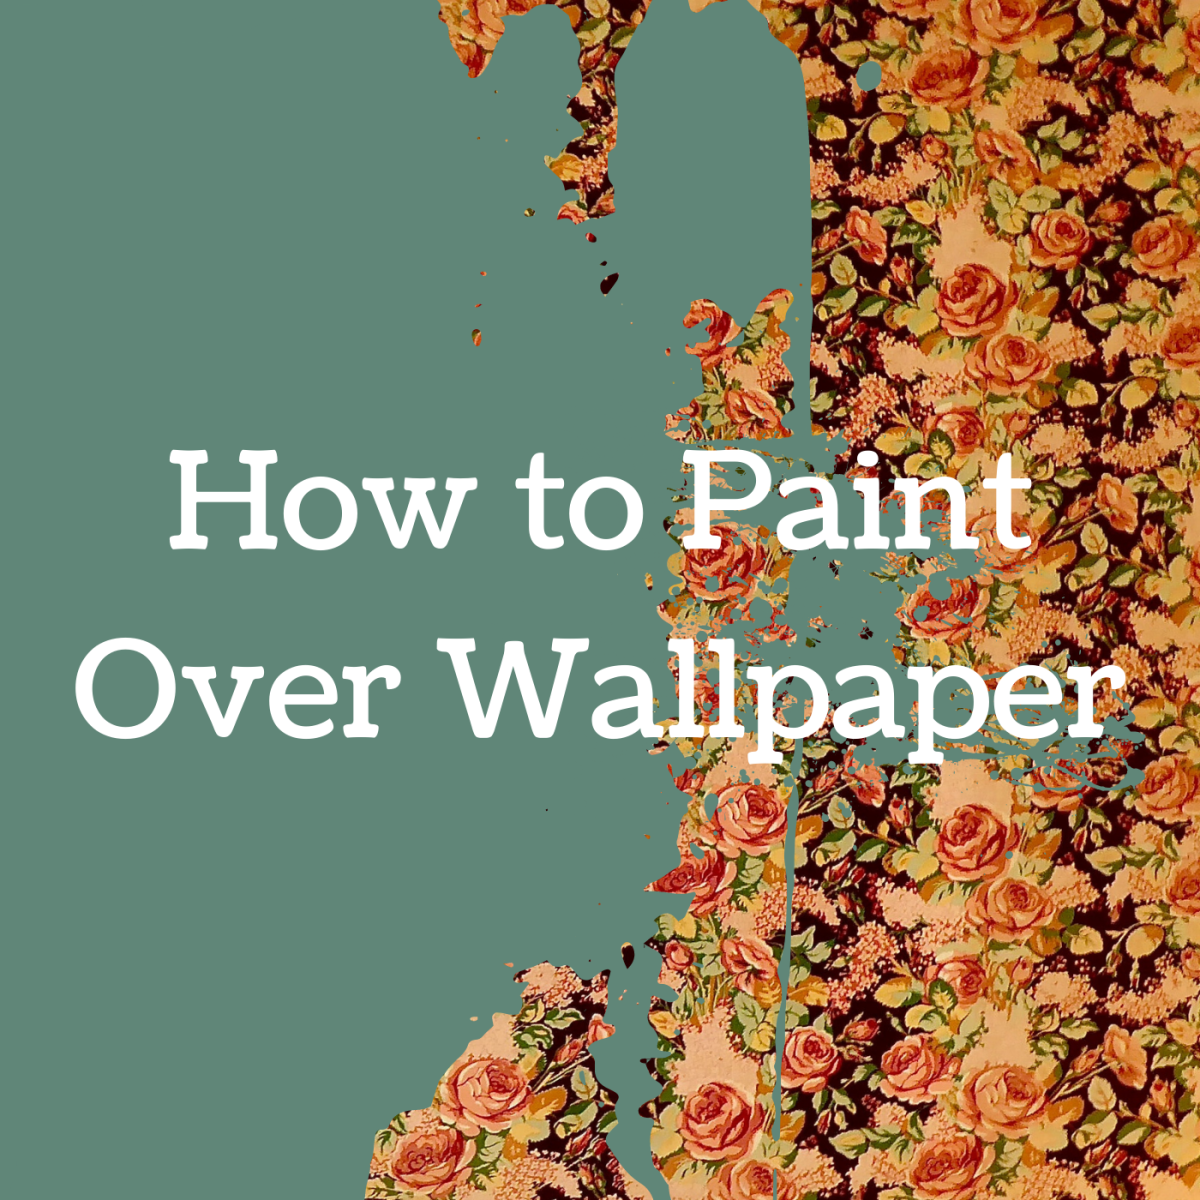 Got some unattractive wallpaper that you want to cover up? Learn how to paint over it the right way.